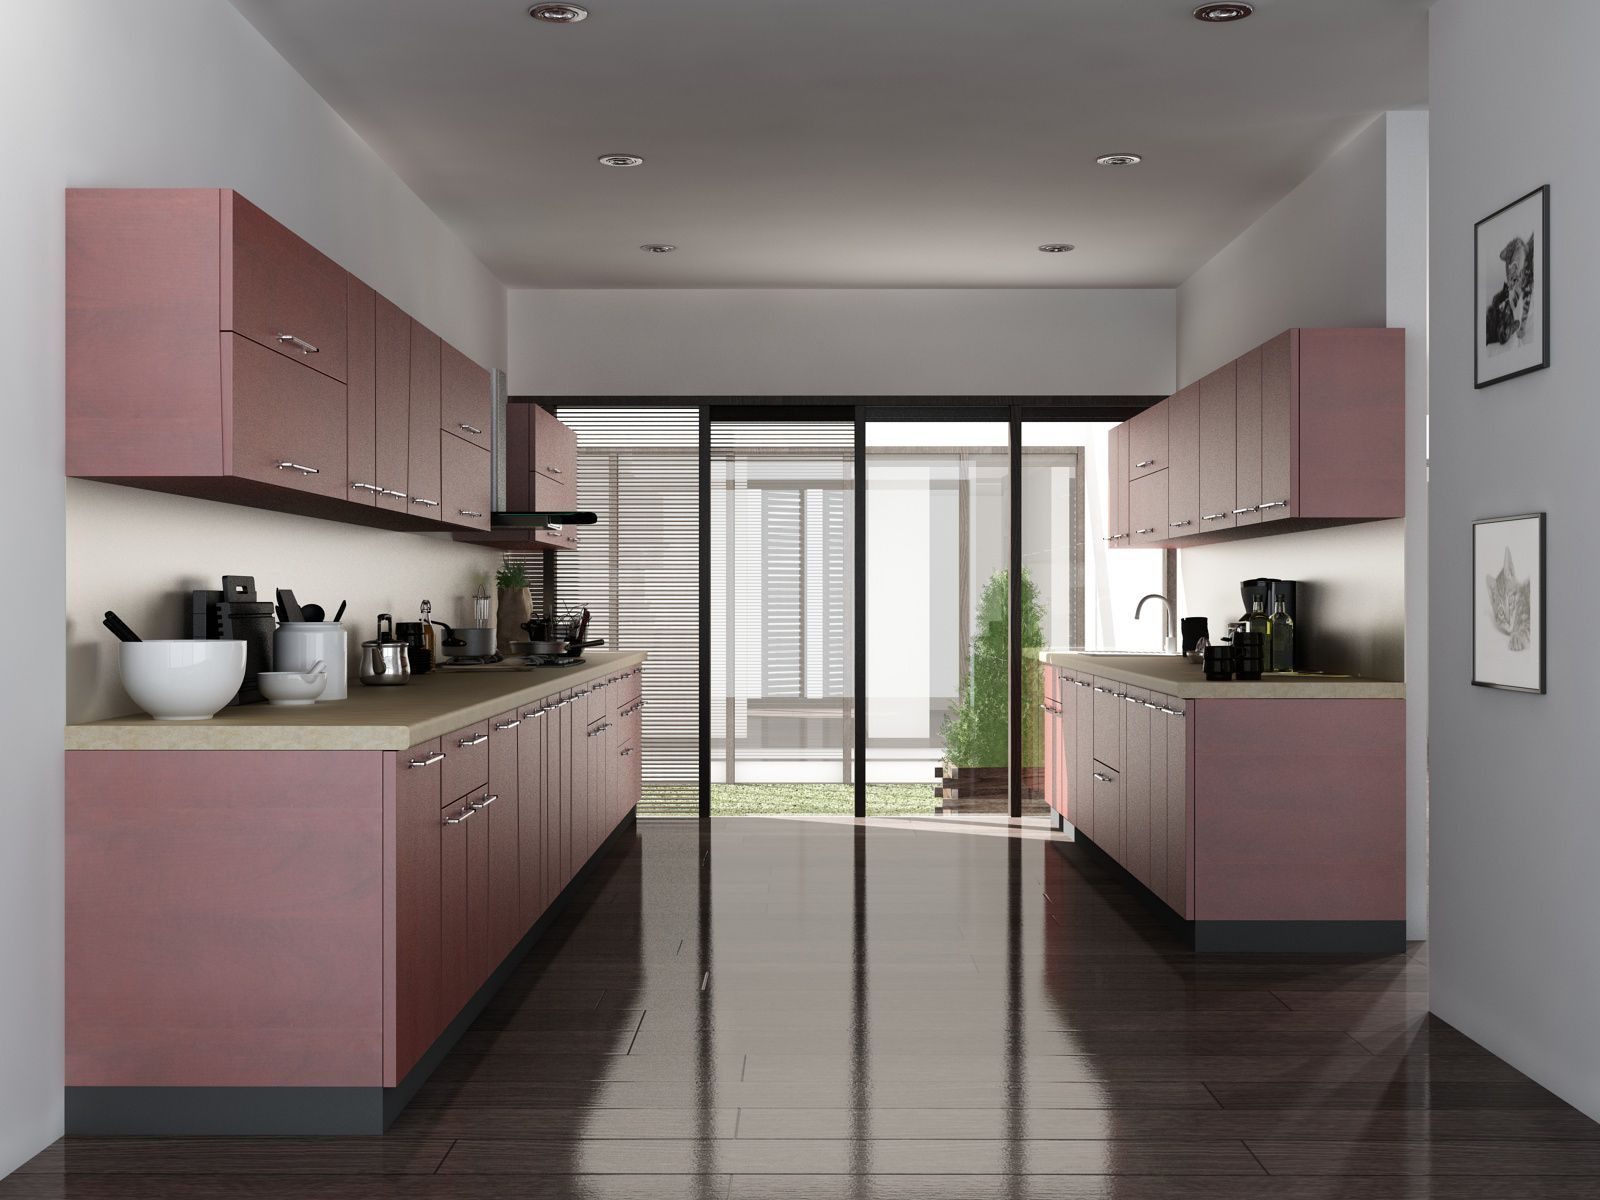 Parallel Modular Kitchen Design India Check More At Http Www Homeplans Club 2019 06 2 Parallel Kitchen Design Kitchen Designs Layout Kitchen Furniture Design